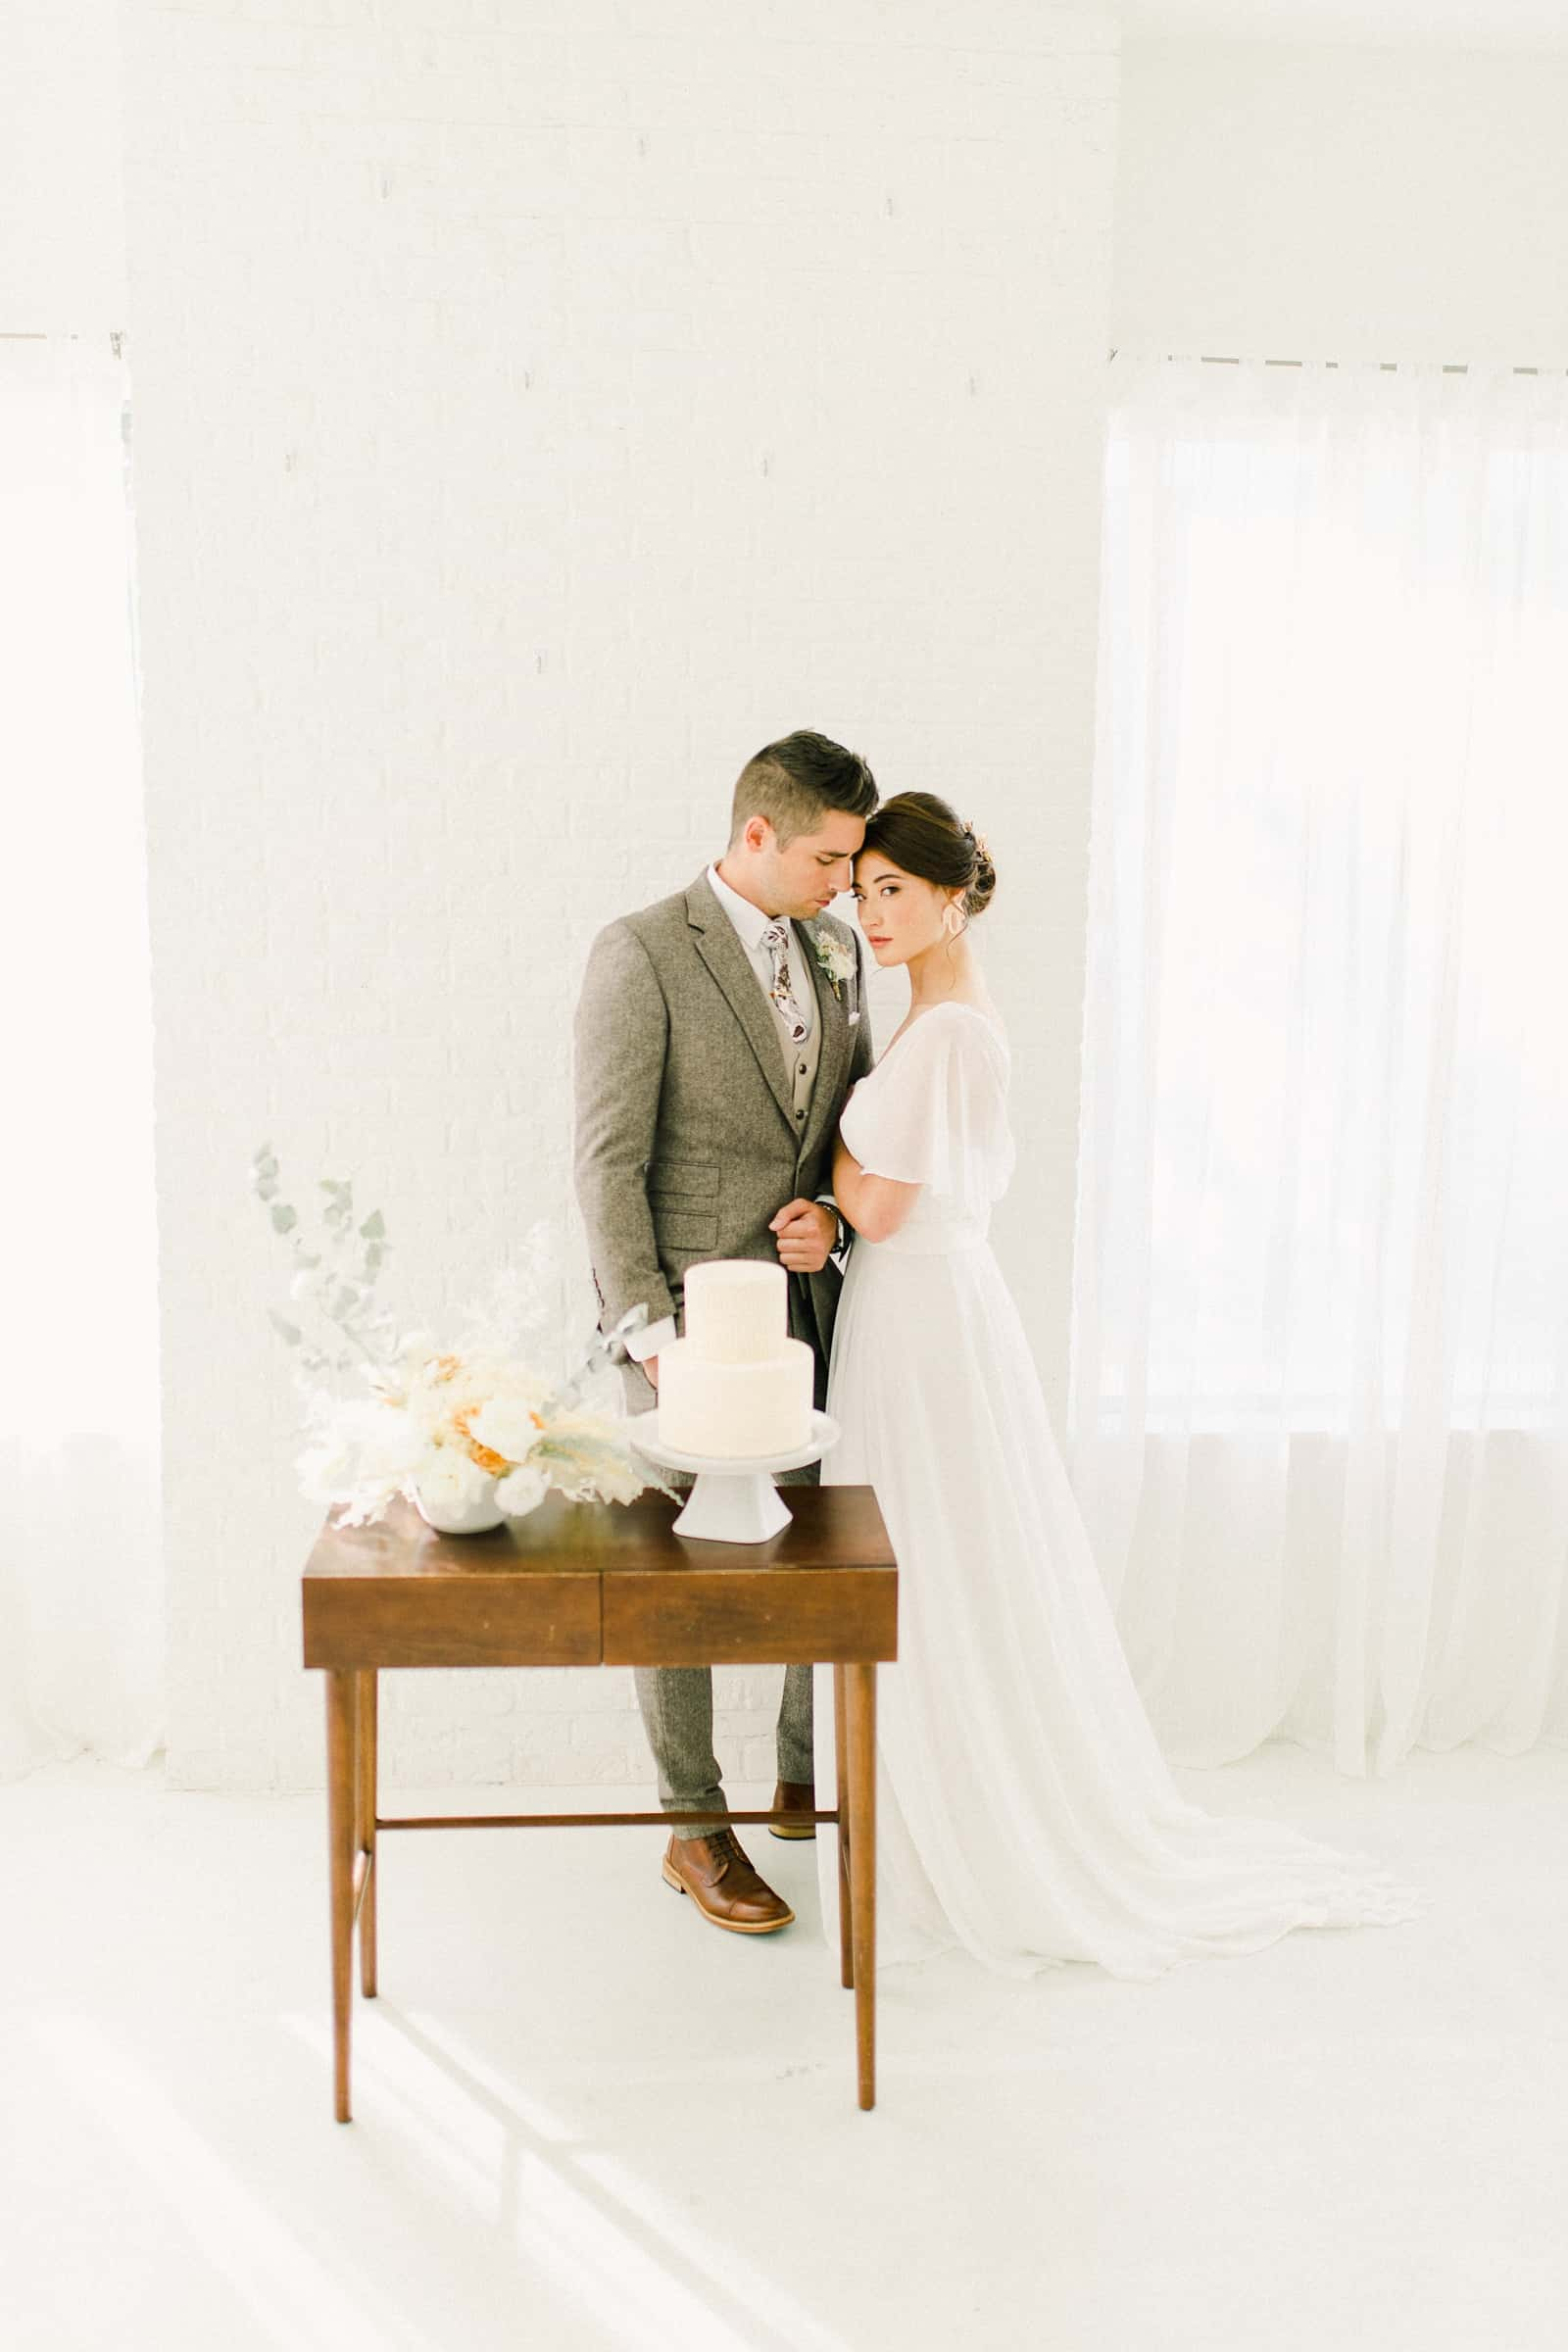 Bride and groom stand in front if Modern wooden wedding cake table with minimalist neutral flowers